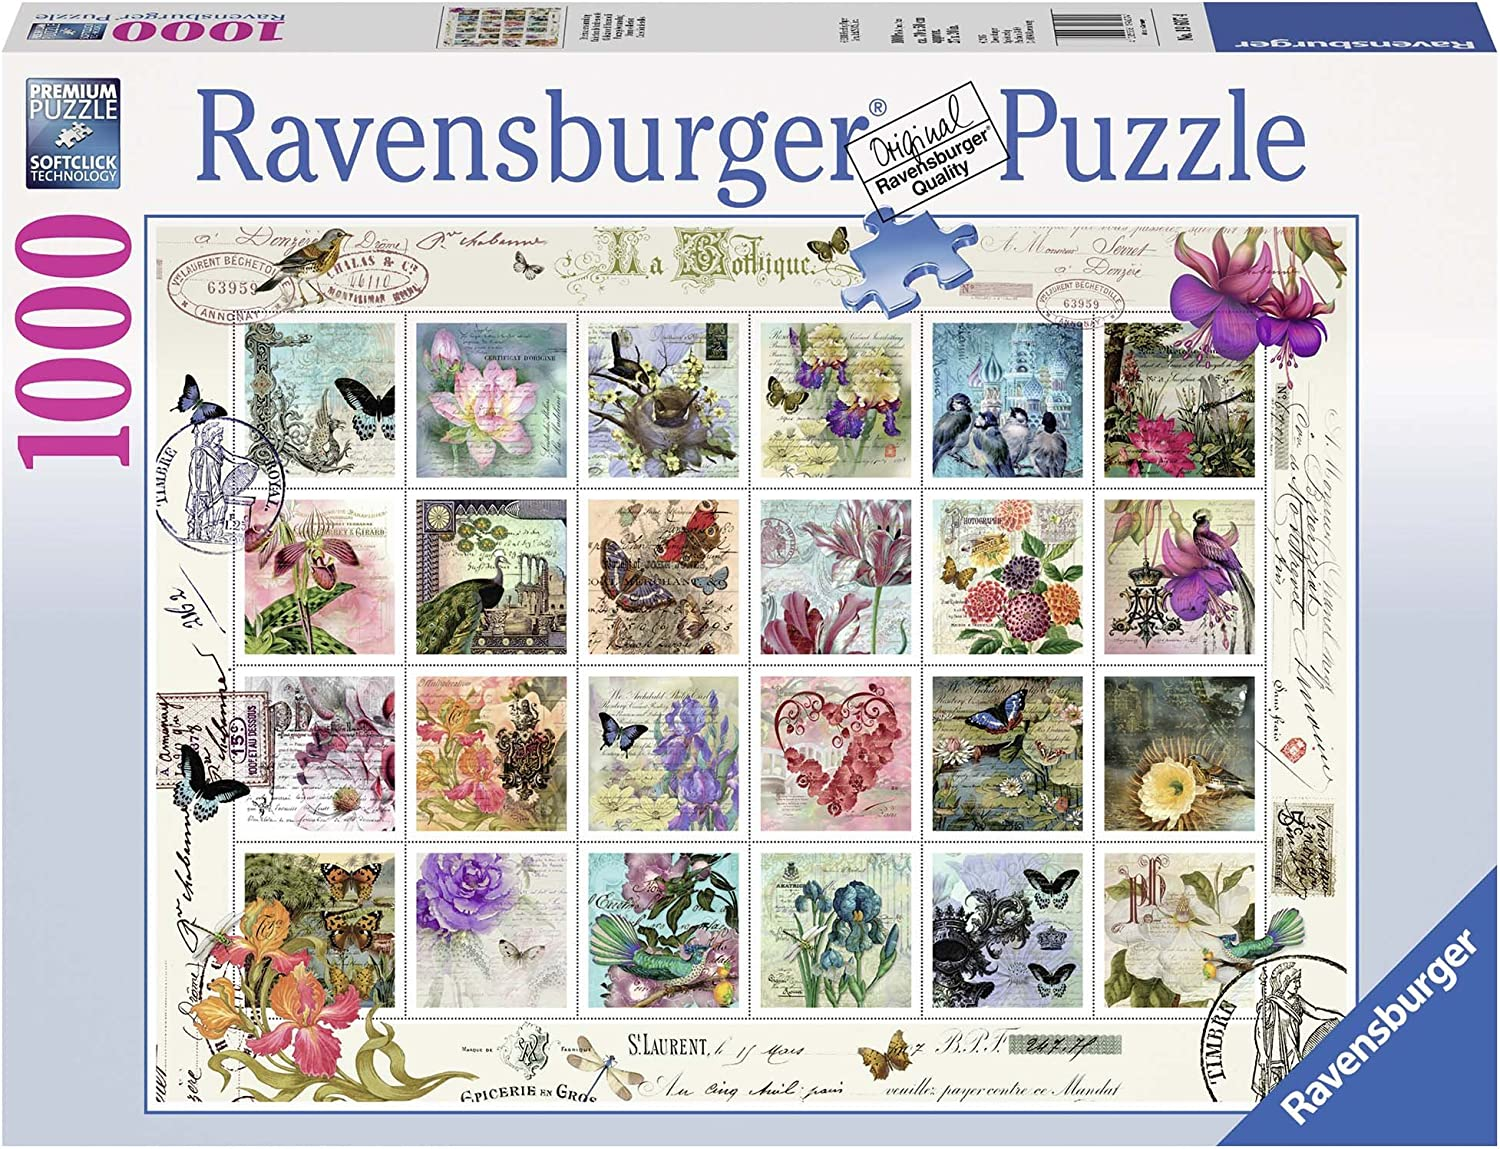 Ravensburger Stamp Collection Jigsaw Puzzle (1000 Piece)